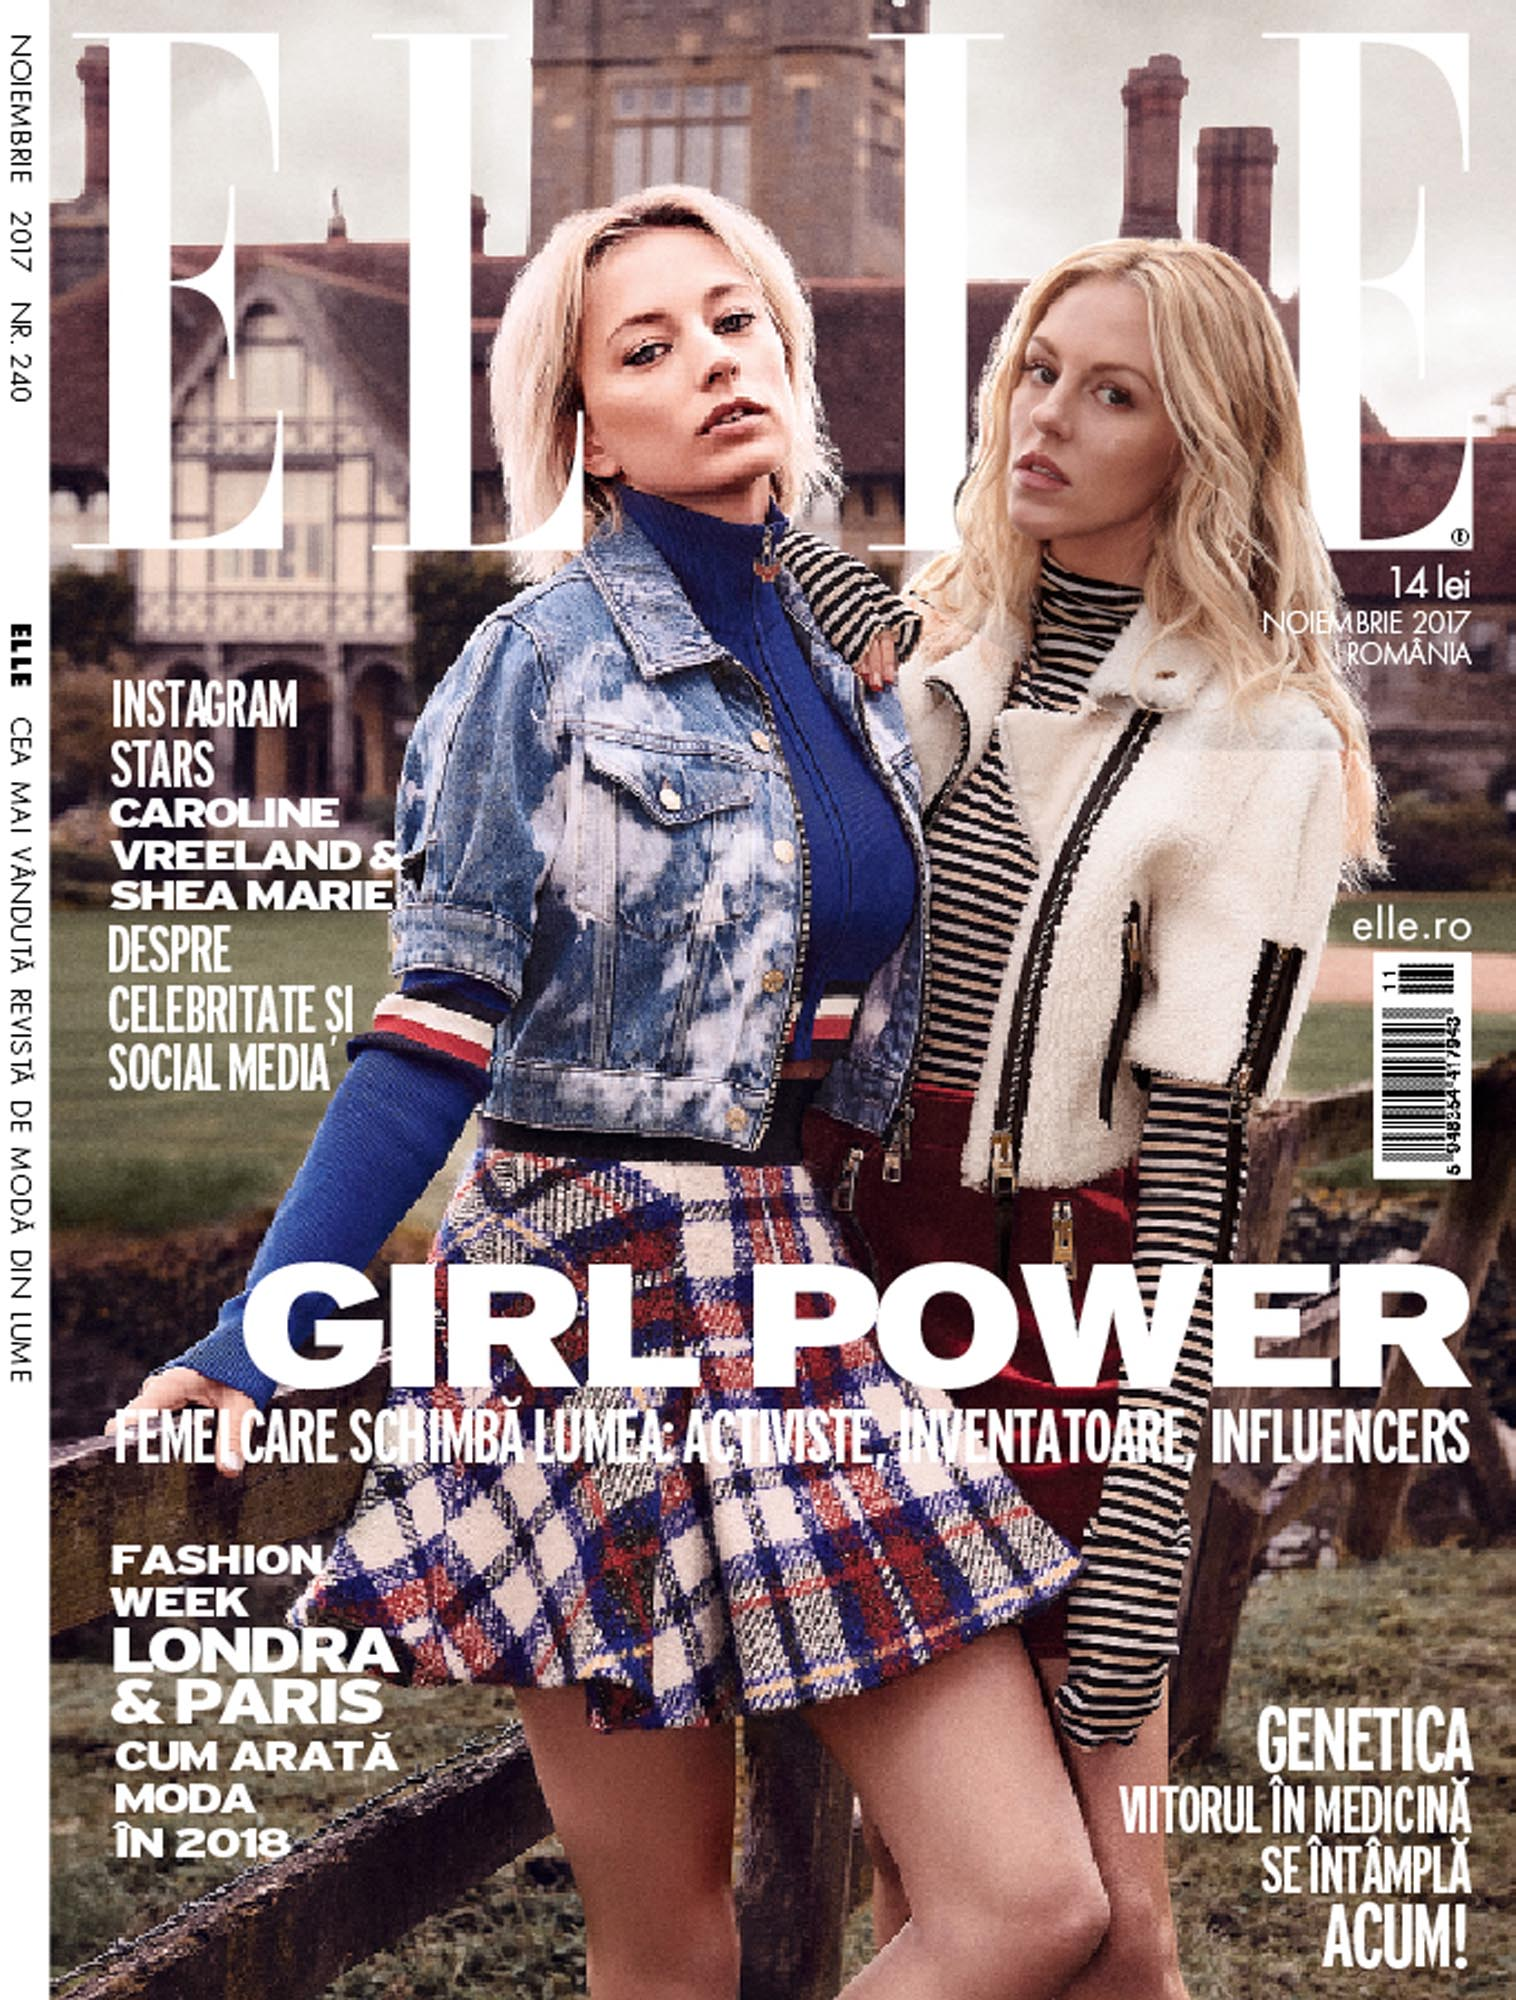 Elle Romania Cover Photography Production by Luke Jackson